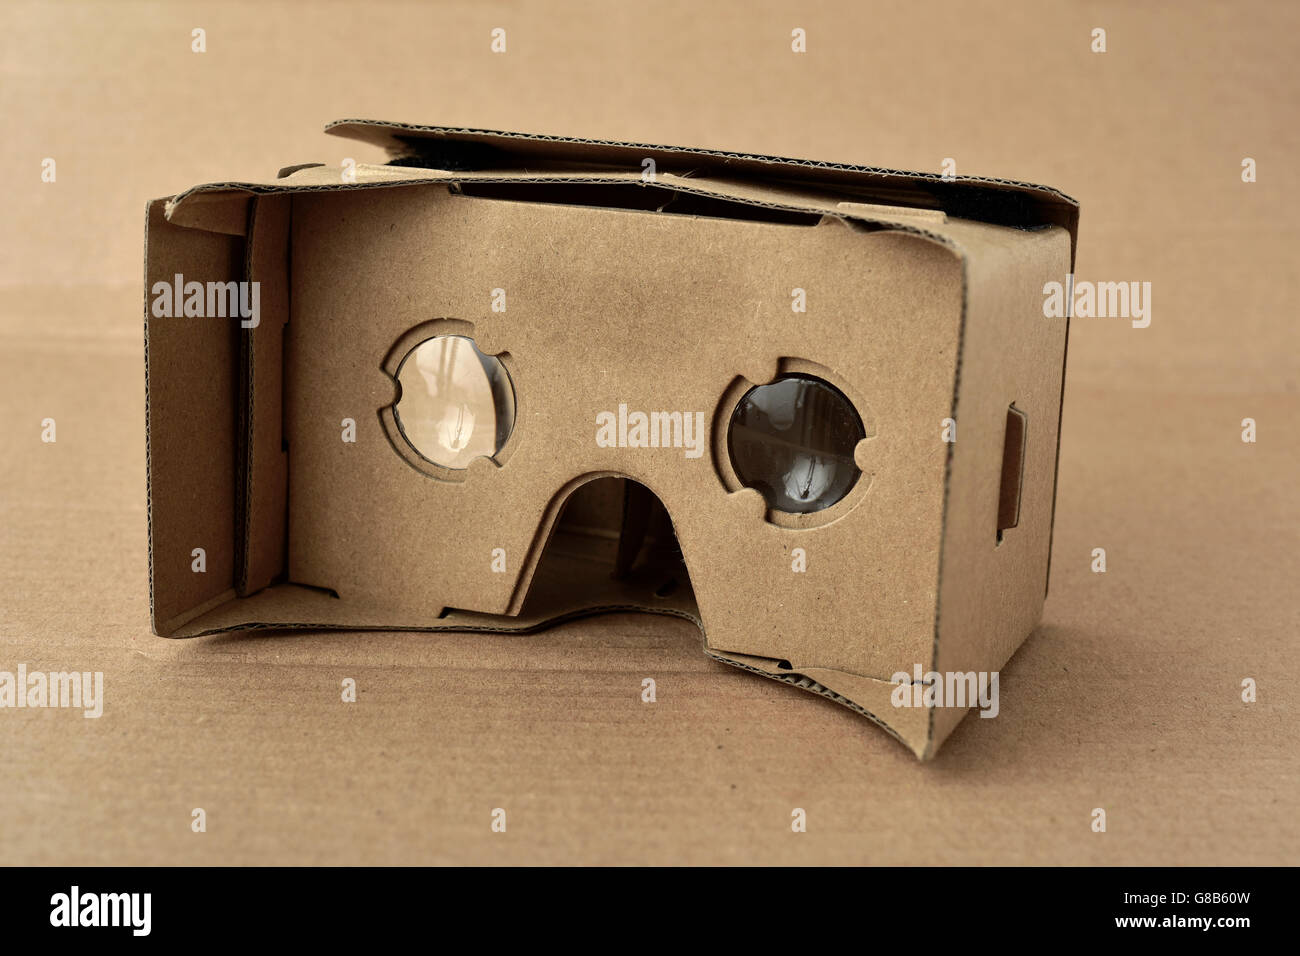 closeup of a pair cardboard virtual reality lenses on a cardboard background - Stock Image